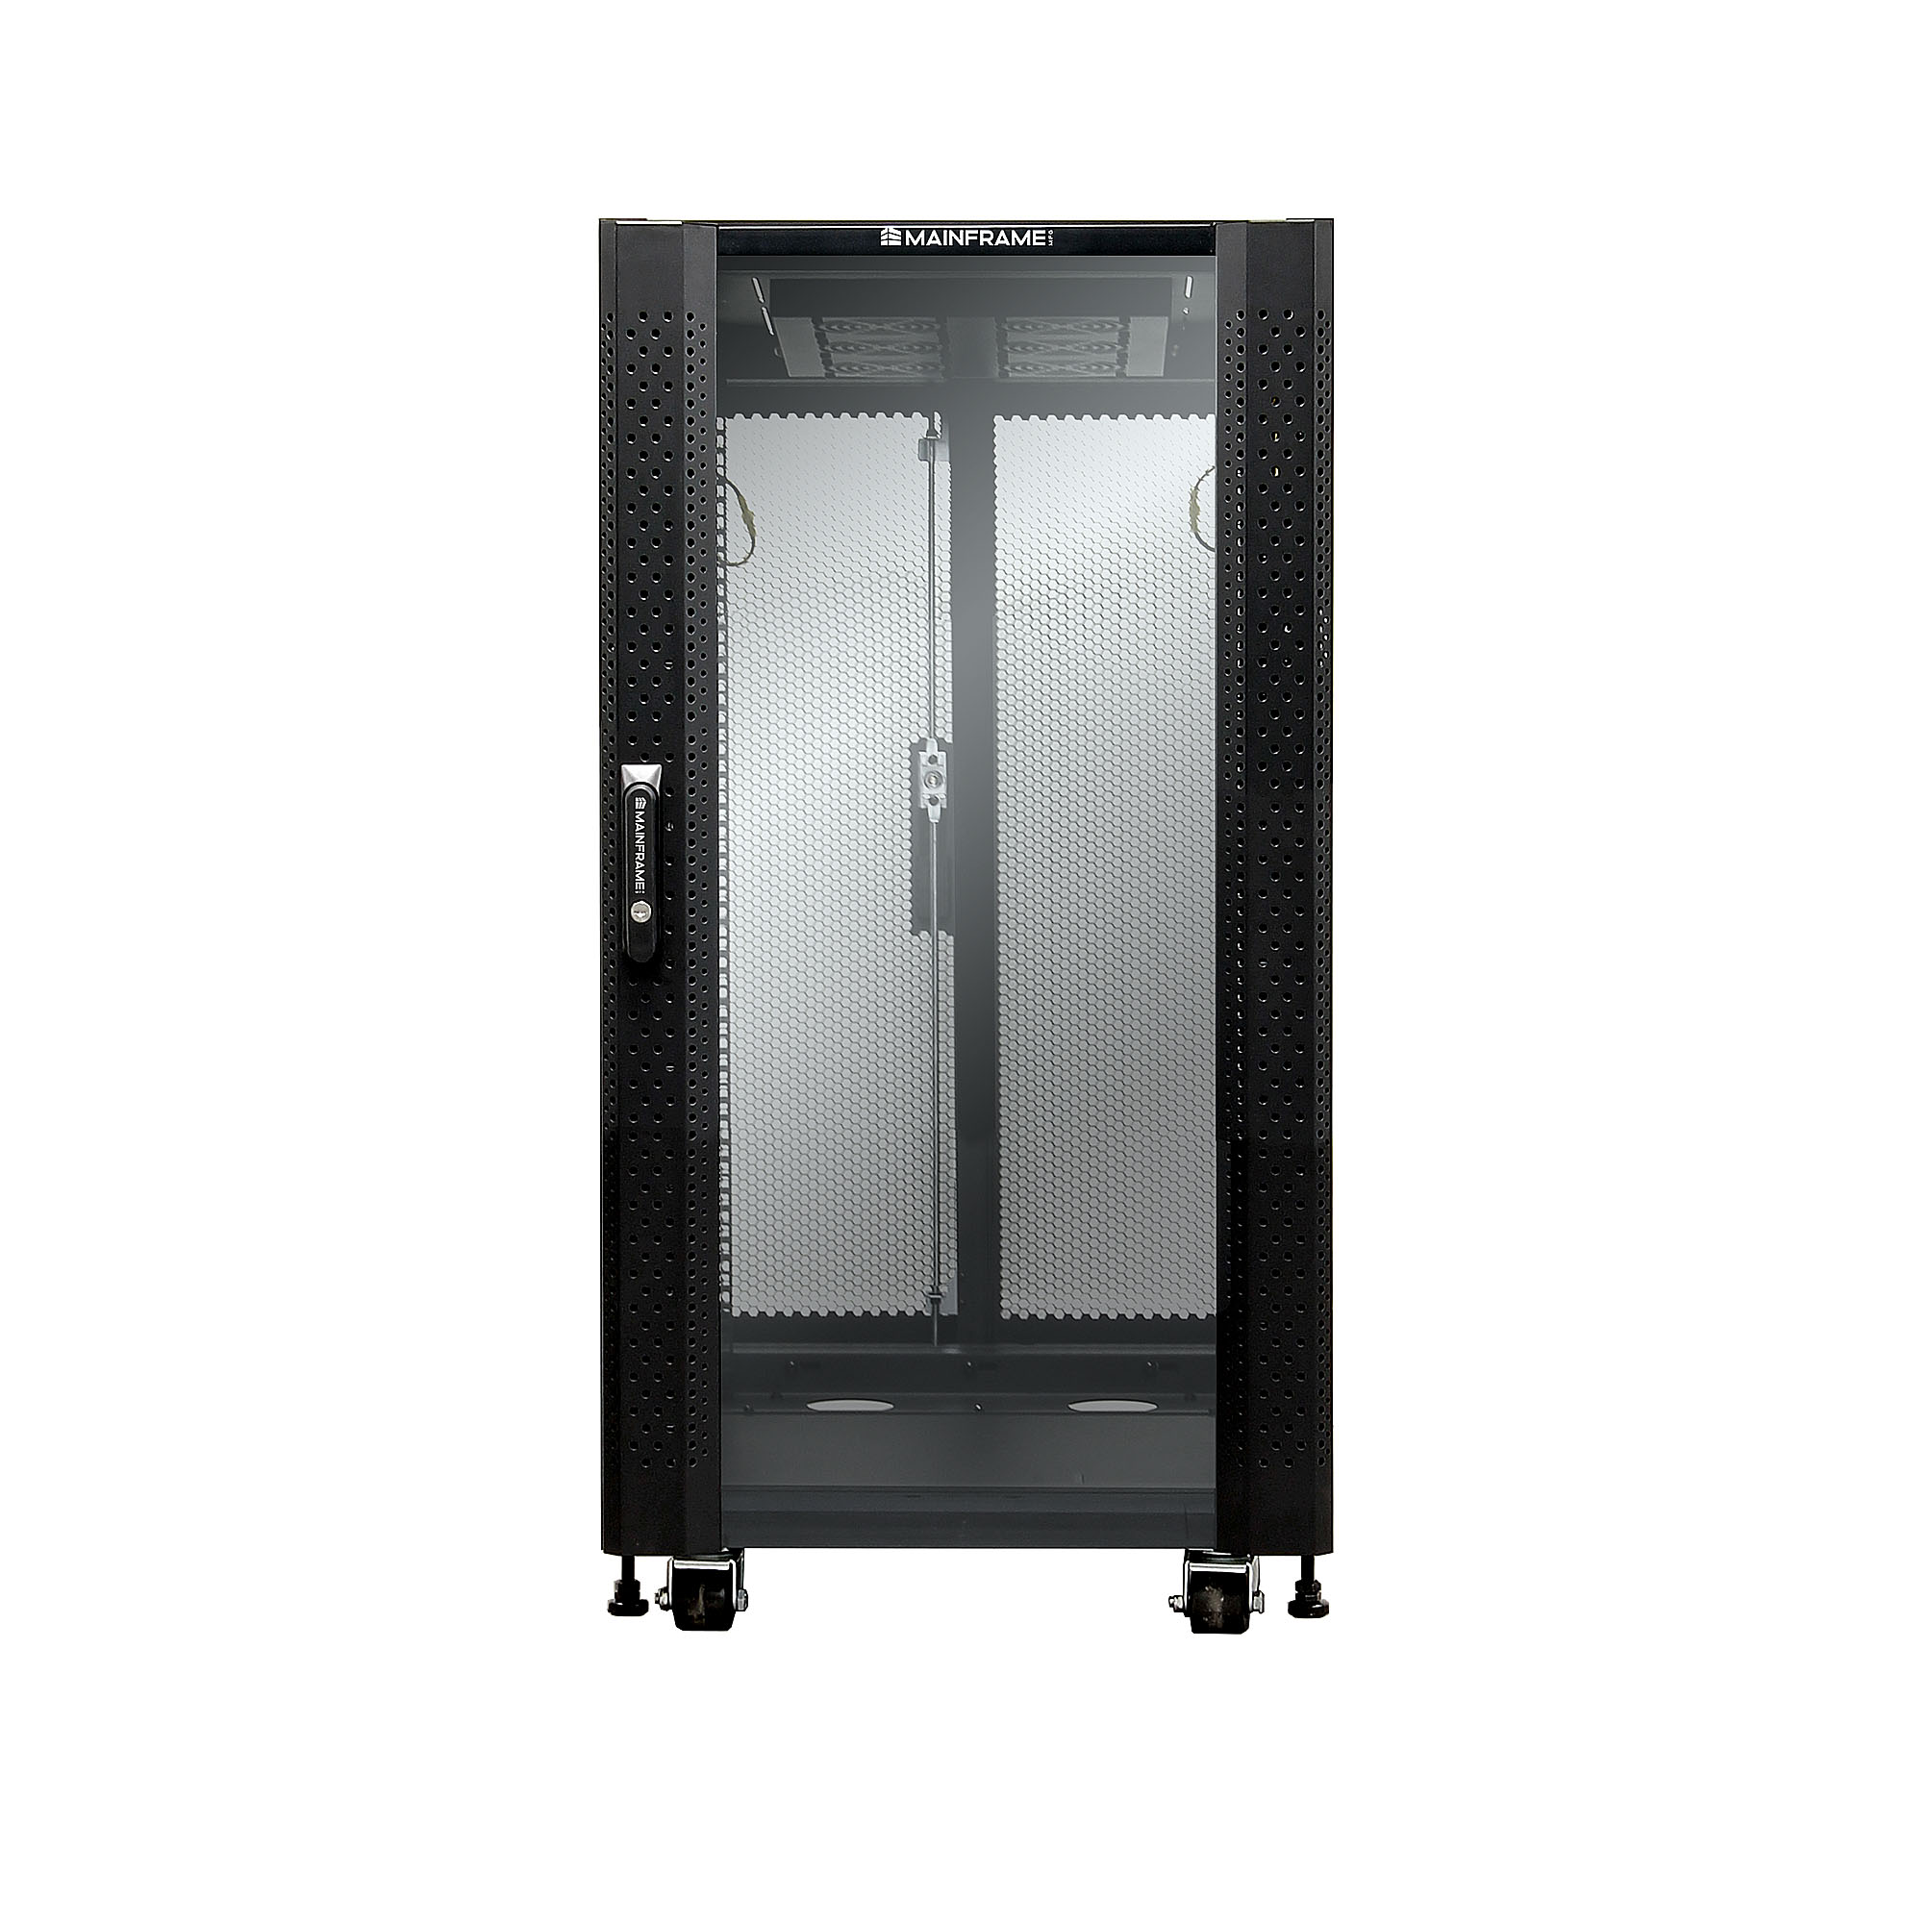 MAINFRAME 22U CLOSED CABINET W/GLASS FRONT & STEEL MESH REAR DOORS